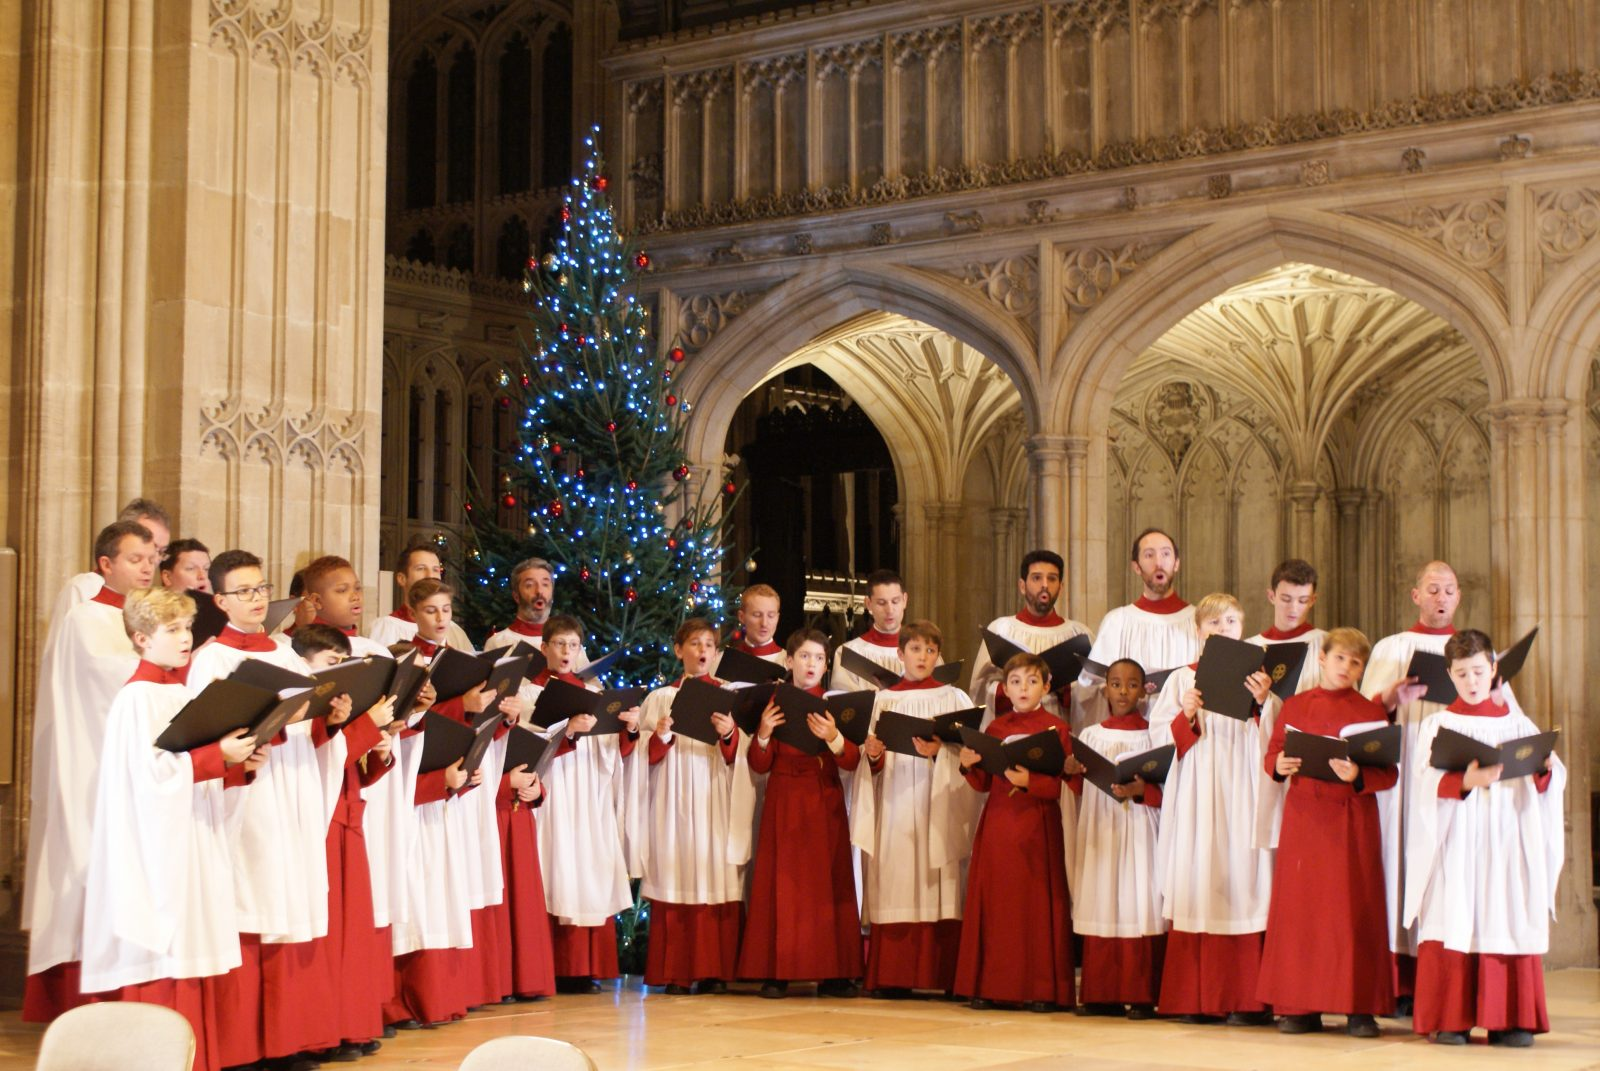 The Choir Of St Georges Chapel Windsor Castle Christmas 2020 St George's Chapel Choir sing Carol of the Bells   College of St